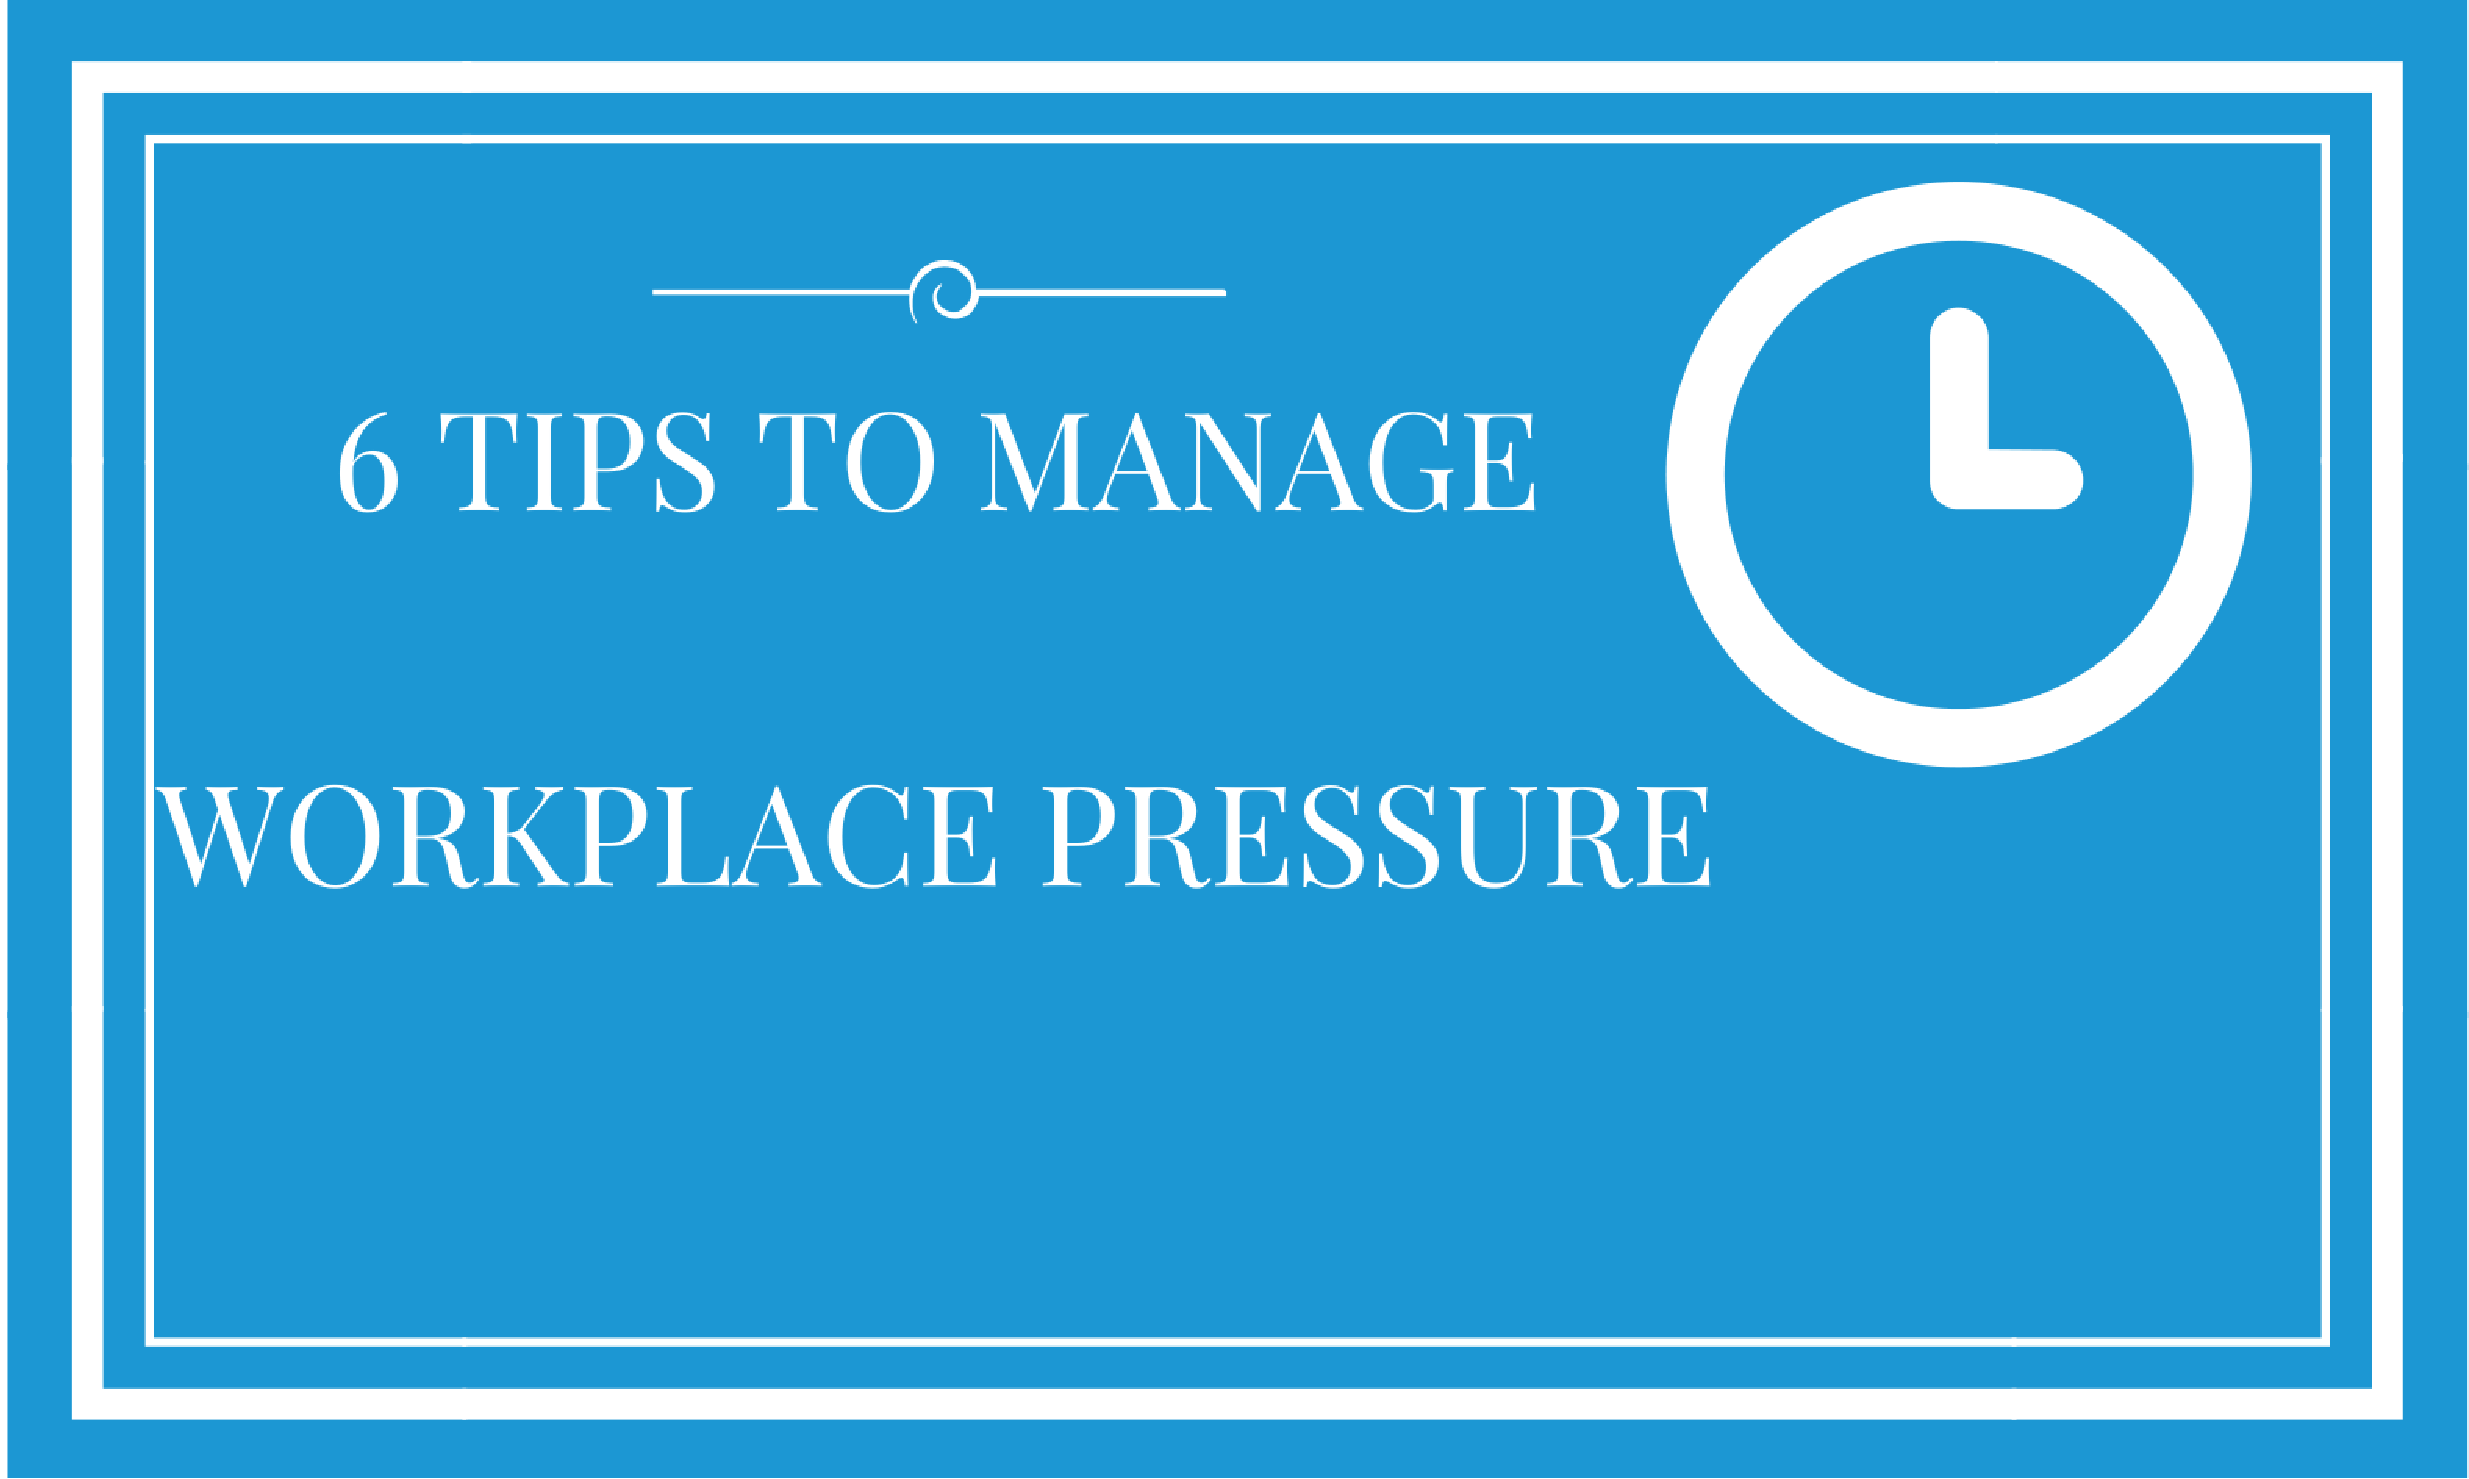 6 Tips To Manage Workplace Pressure